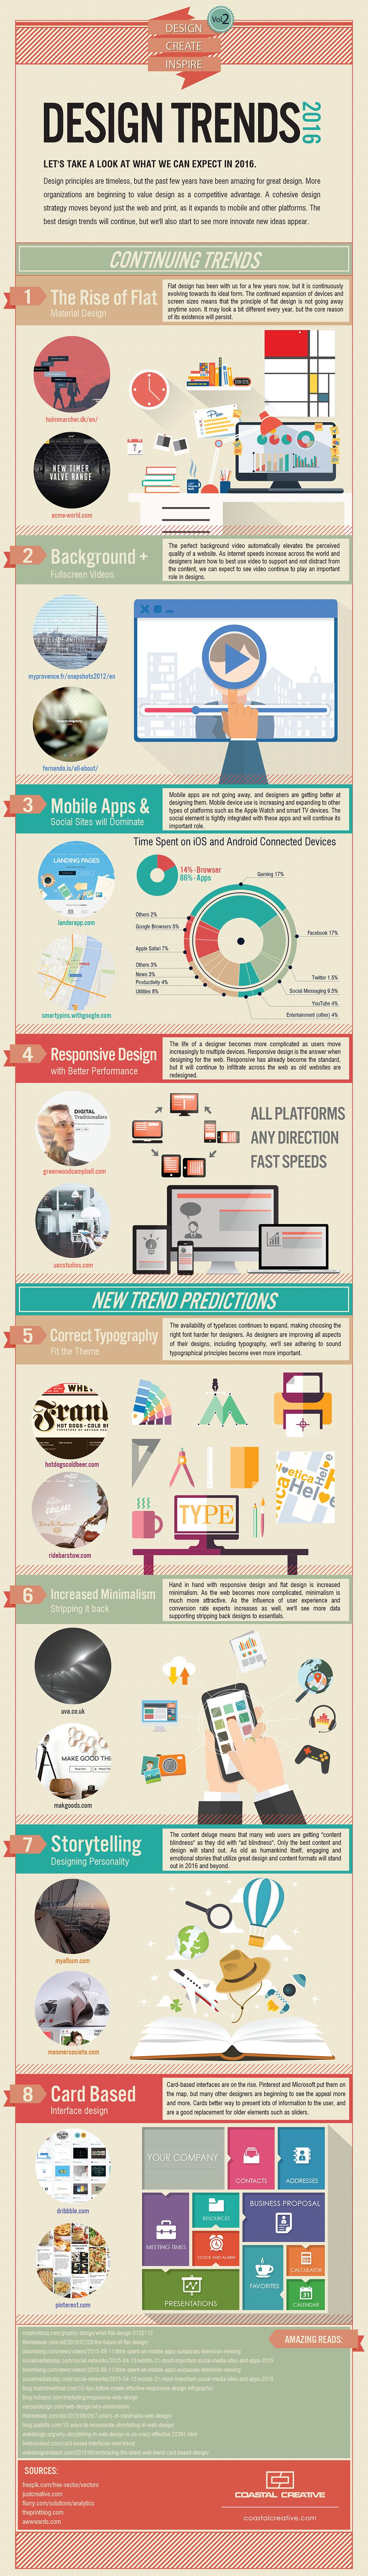 Design Trends 2016 #Infographic